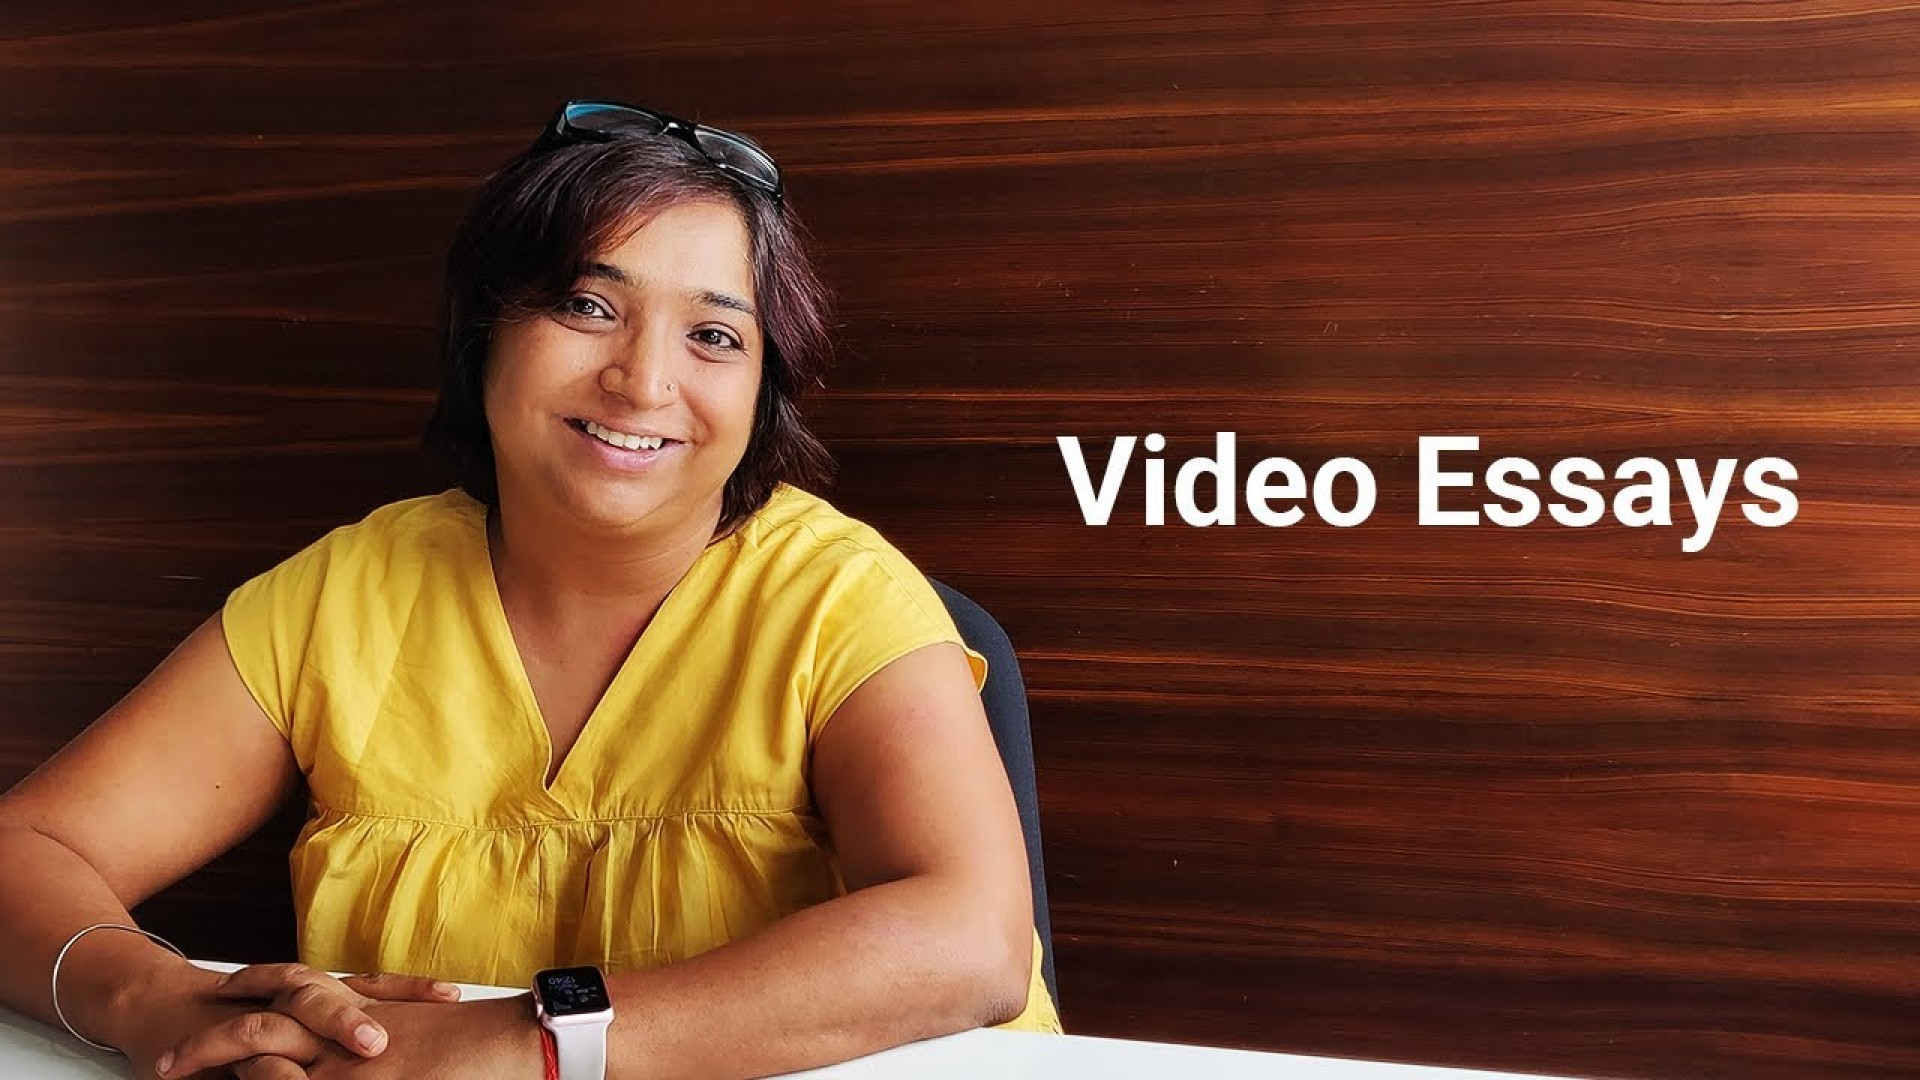 011 Essay Example Maxresdefault How To Make Wonderful A Video Create Photo Using Imovie 1920